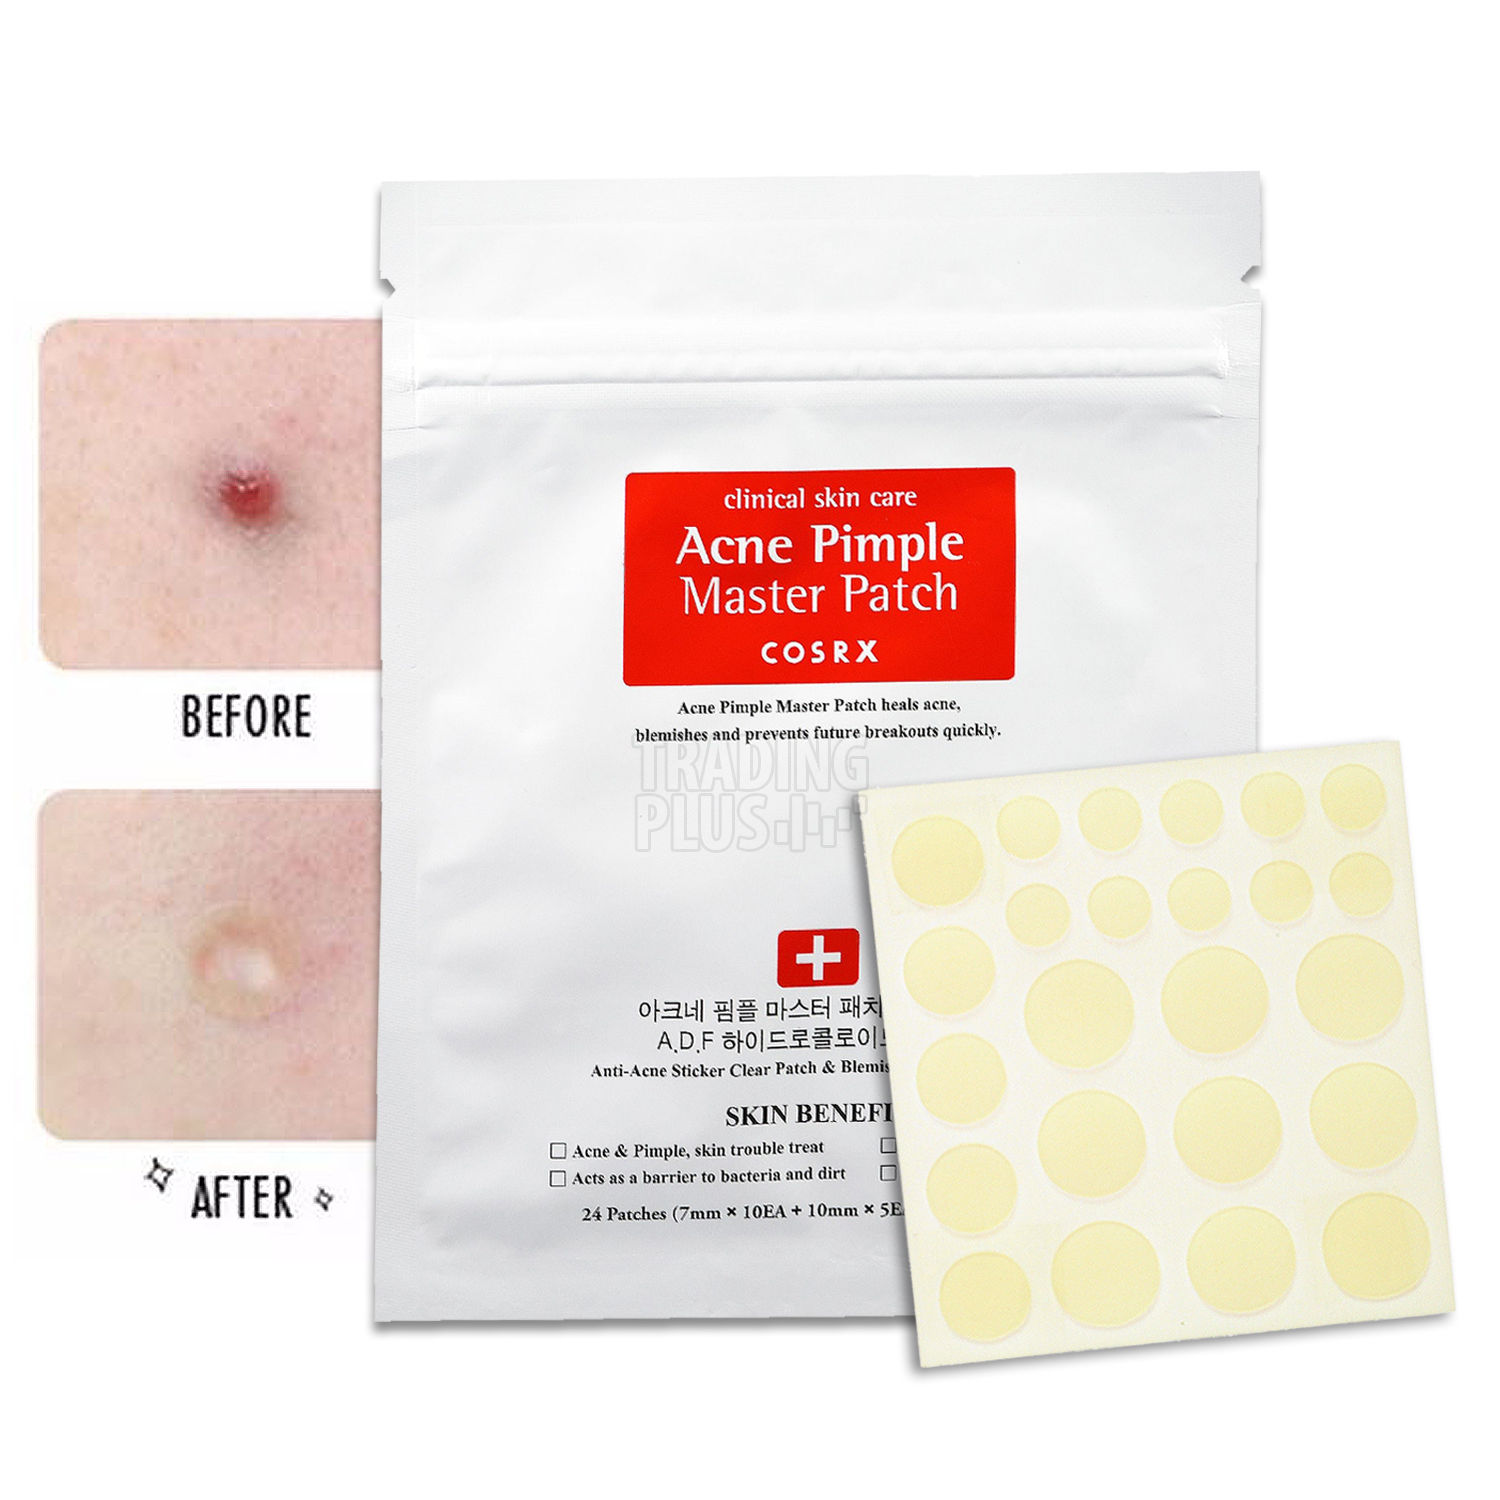 [COSRX] Acne Pimple Master Patch 1 pack (24pcs)